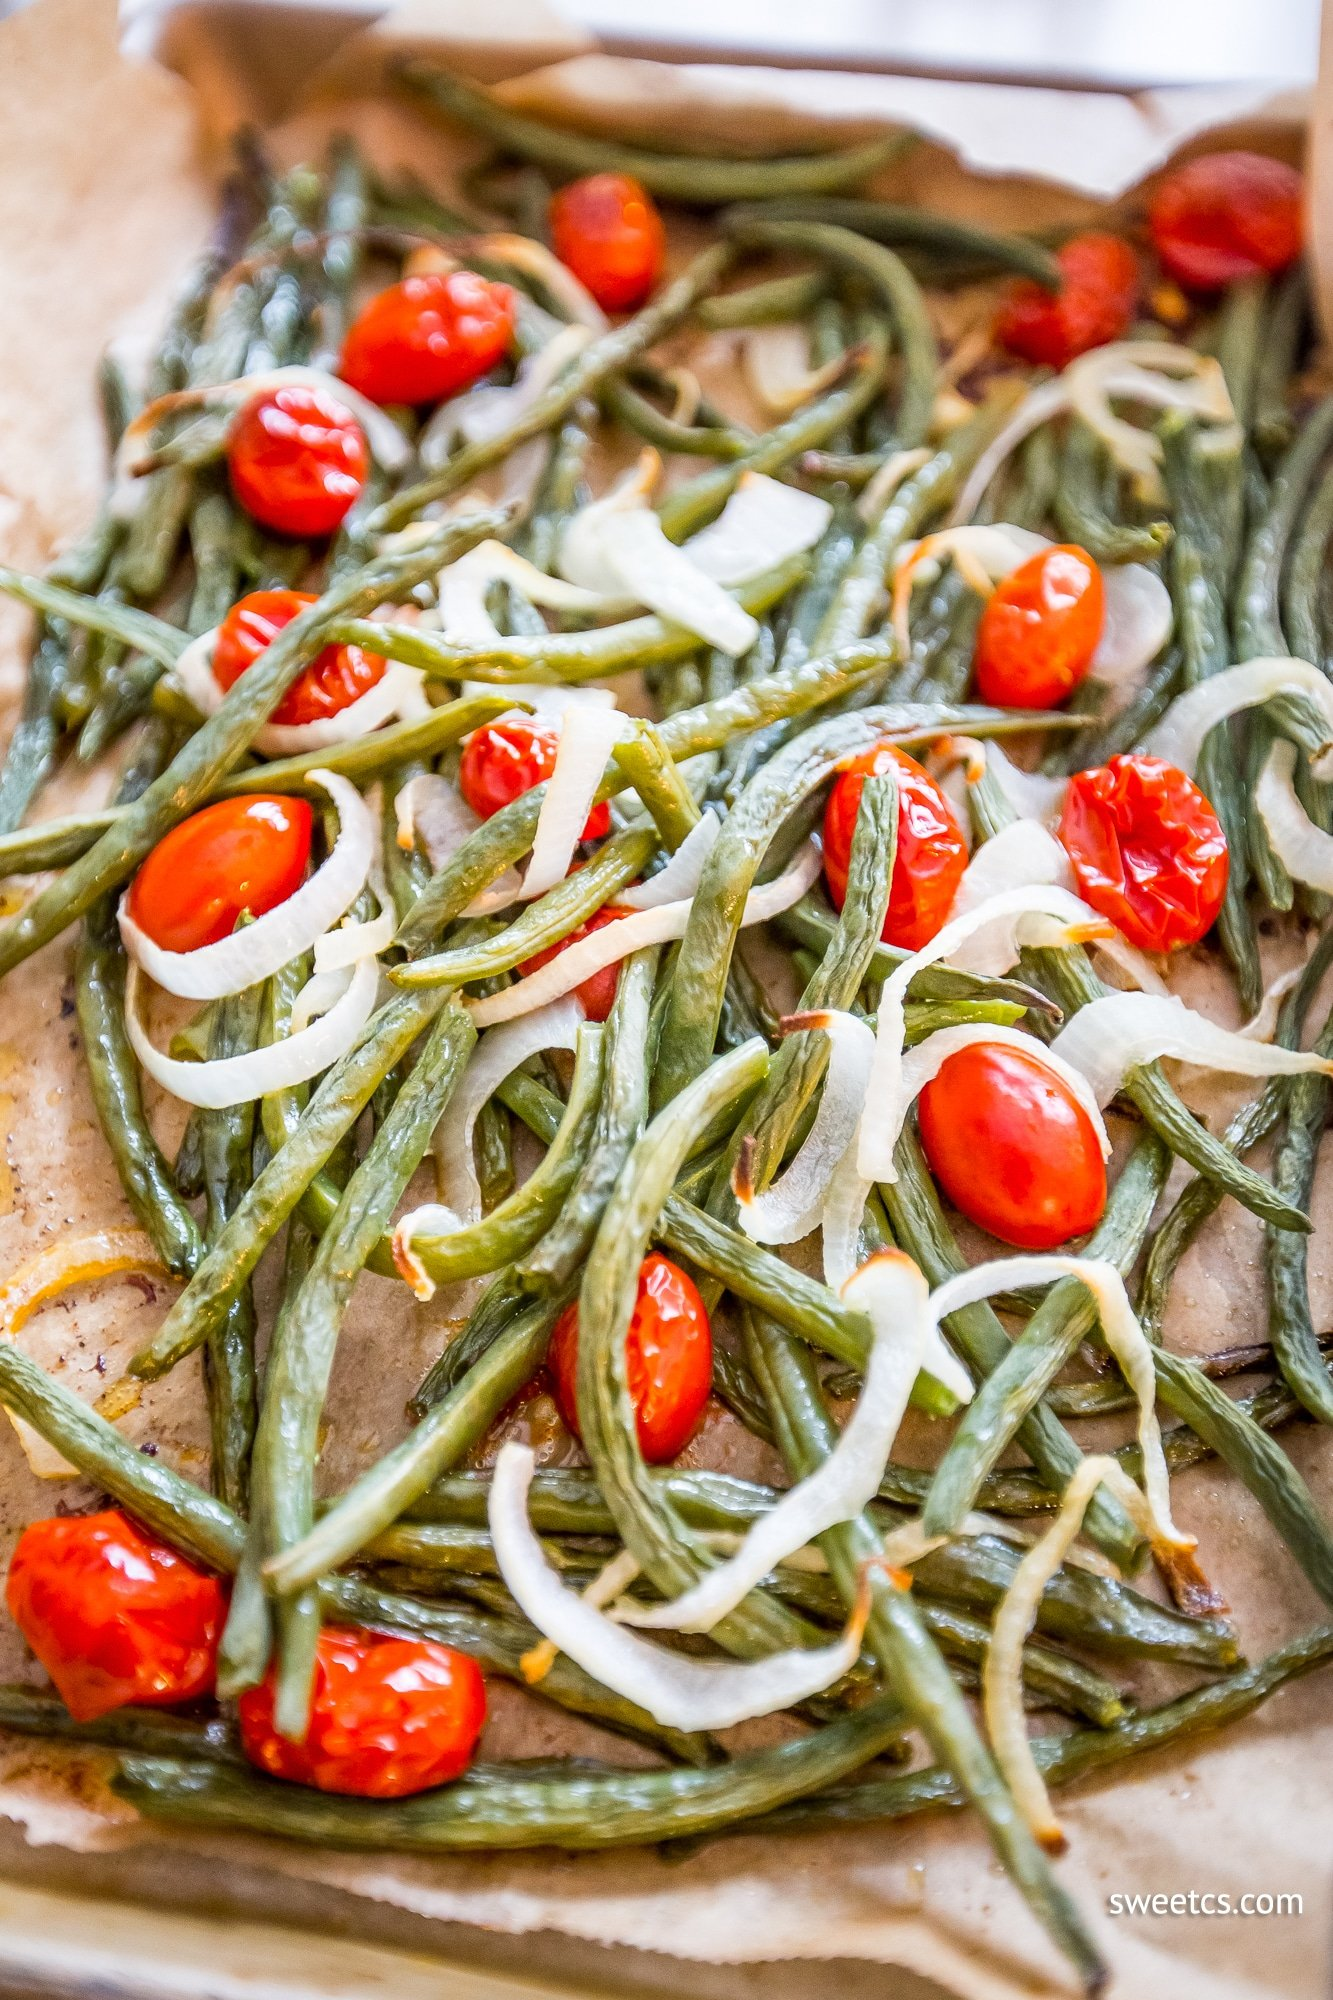 This roasted green bean salad is a delicious and easy healthy side dish!